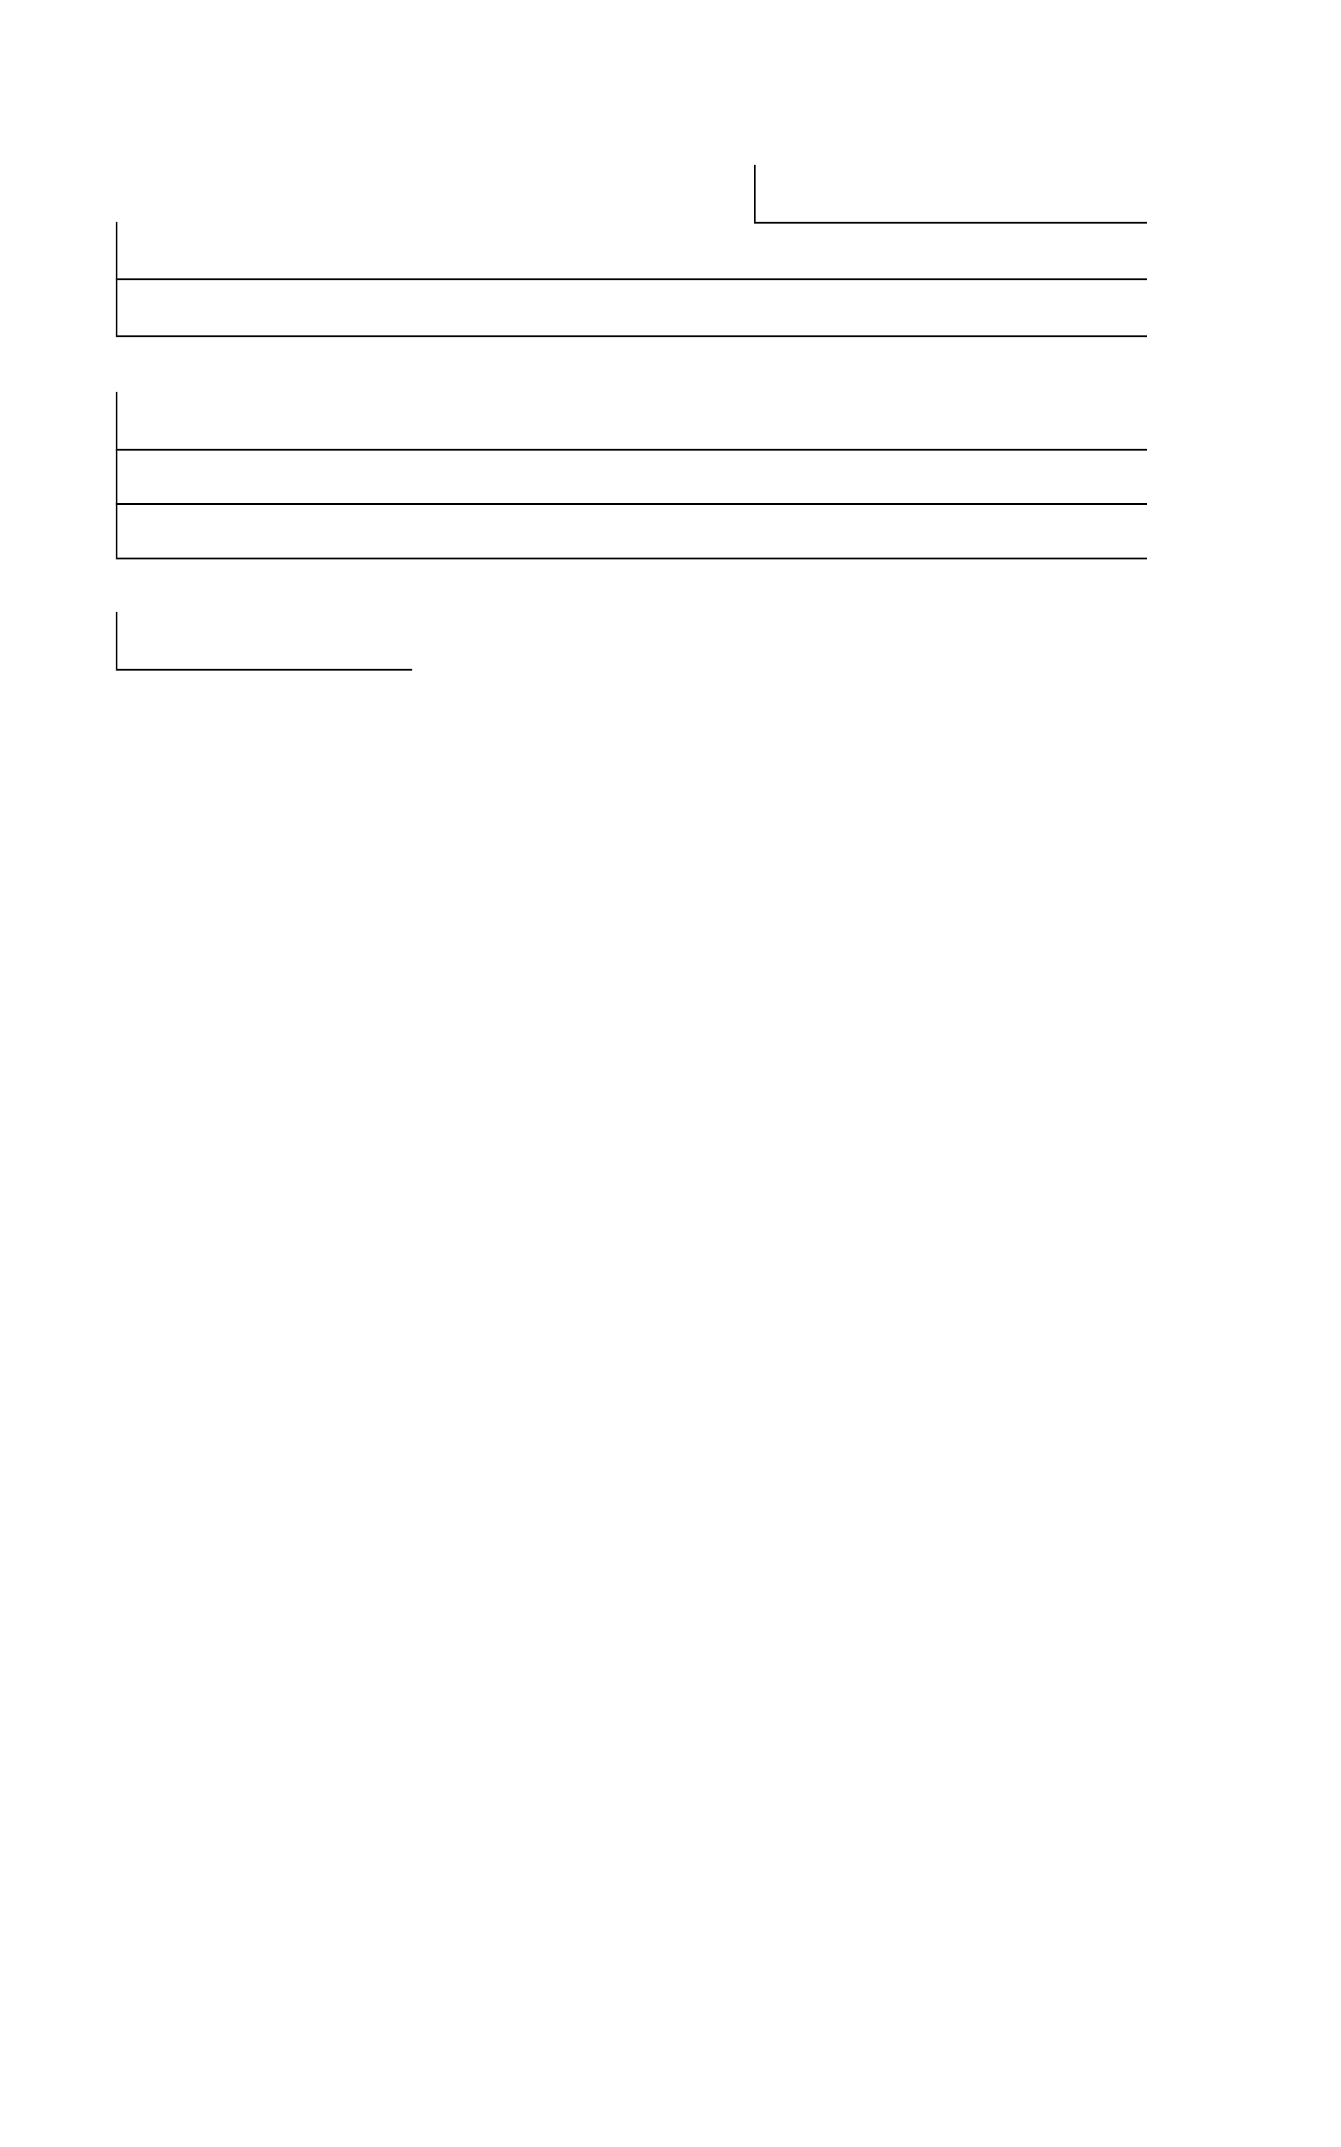 simple personal fax cover sheet 1 simple personal fax cover sheet fax